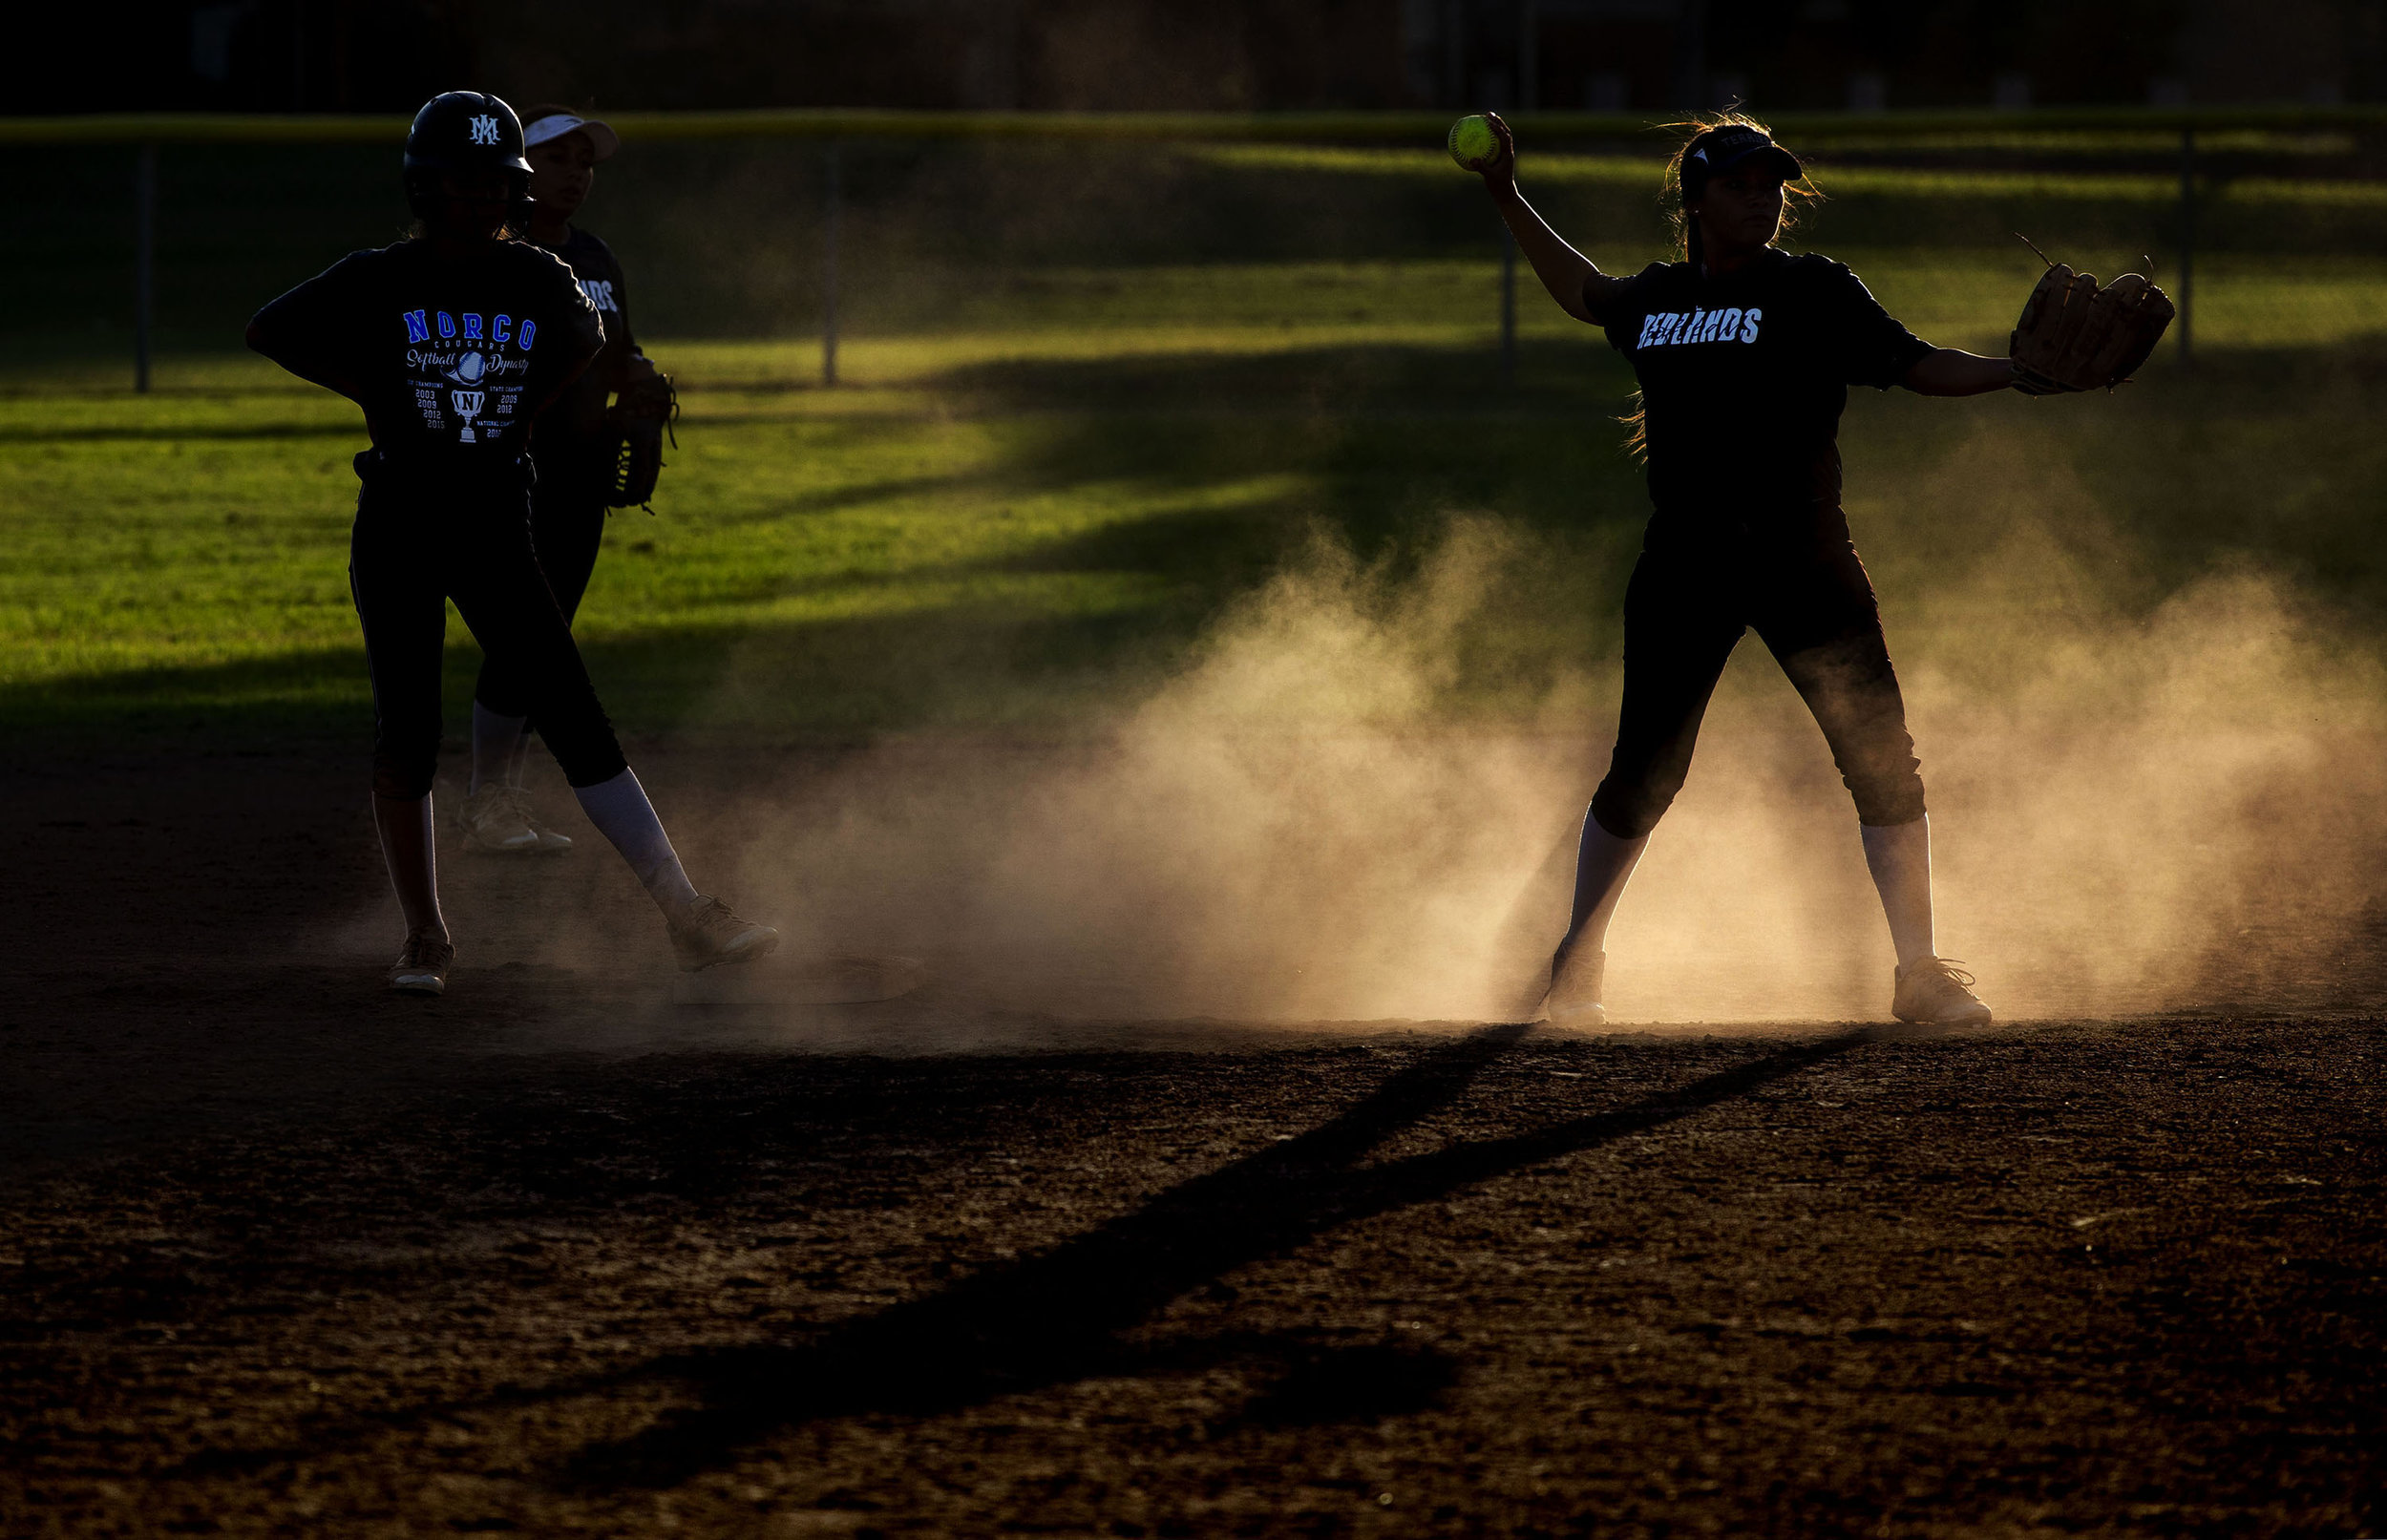 The dust rises after a Norco player steals second base against Redlands during a game La Sierra Park in Riverside on Wednesday, September 26, 2018.